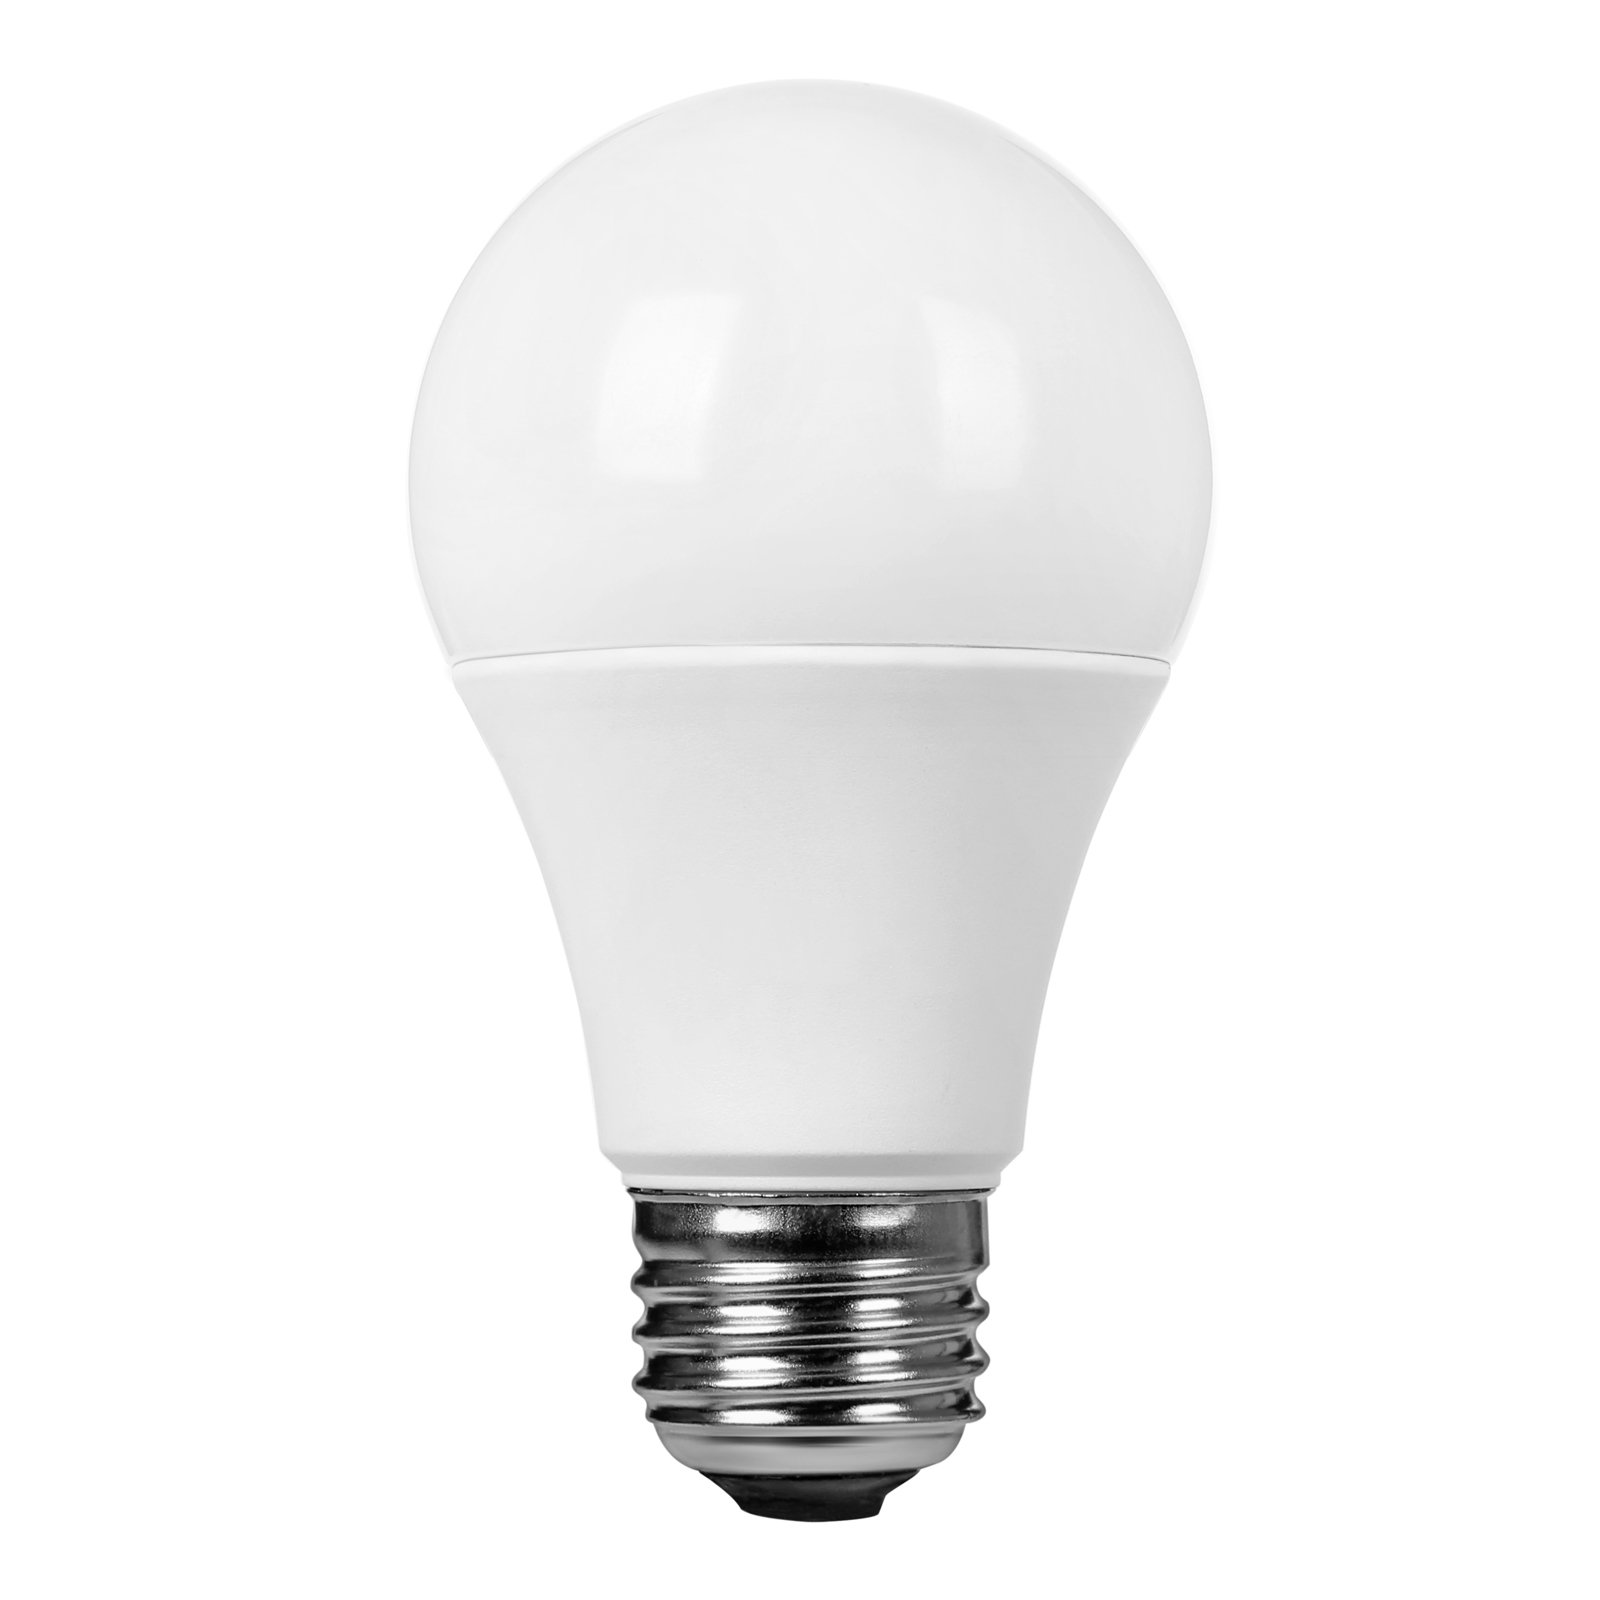 DEWENWILS Smart WiFi LED Light Bulb, Dimmable Multicolored Bulb, Compatible with Amazon Alexa and Google Home Assistant, No Hub Required